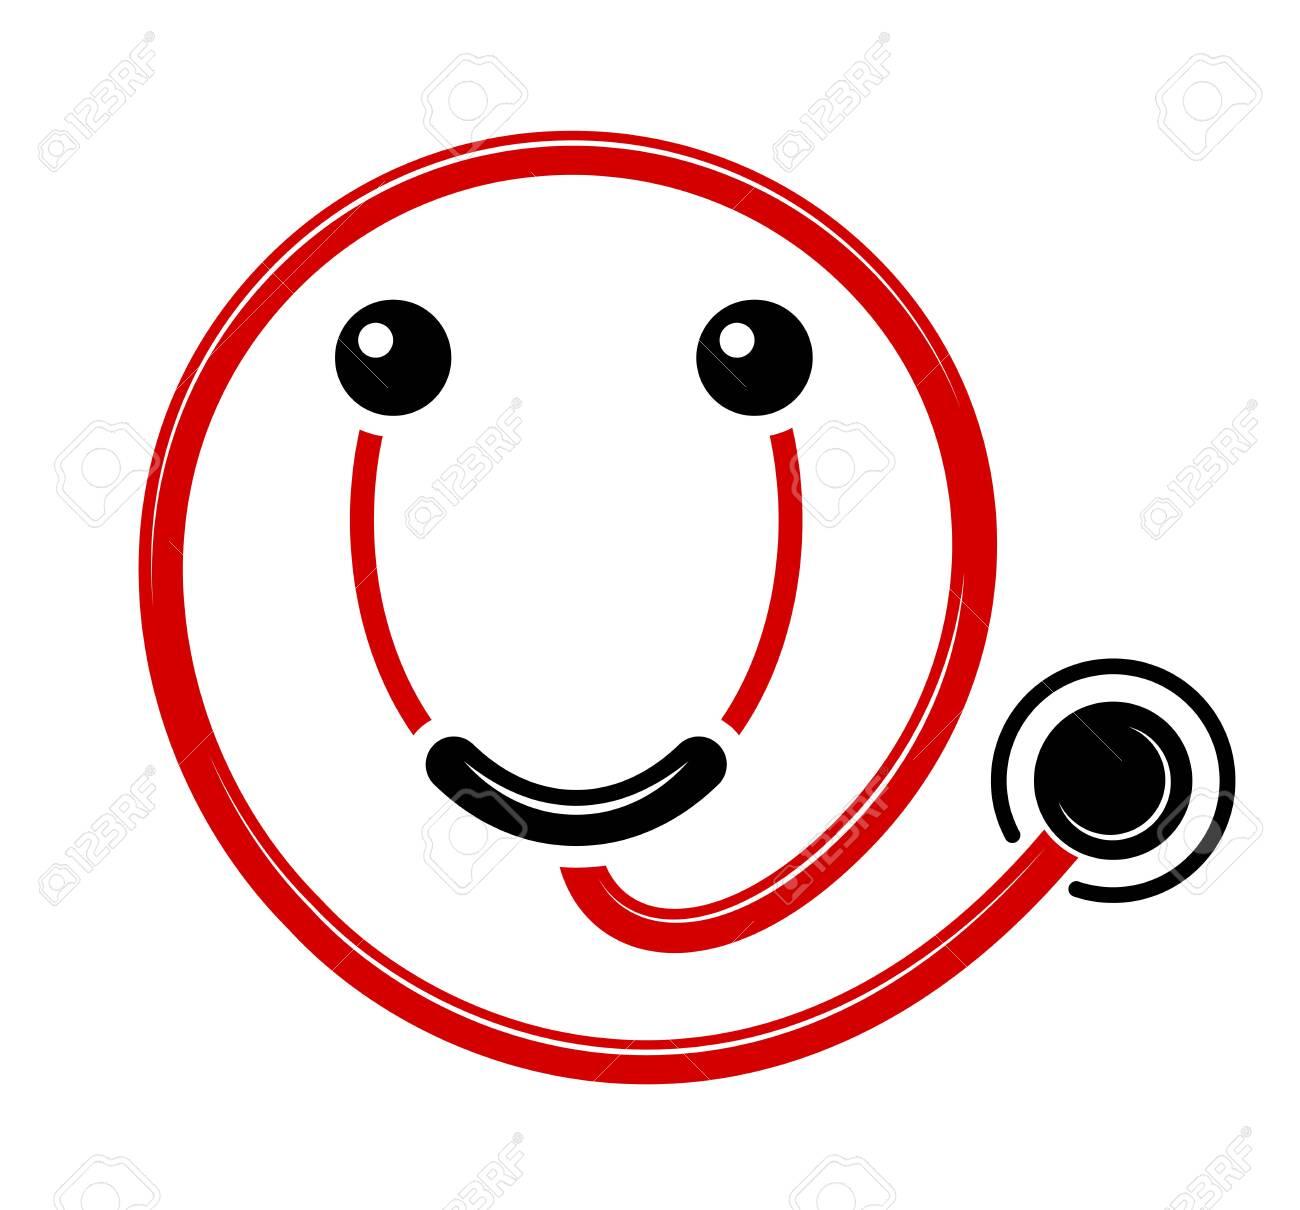 Logo of modern friendly medicine. Pleasant service in the hospital. Smile in the form of a stethoscope. Good doctor. - 130137053